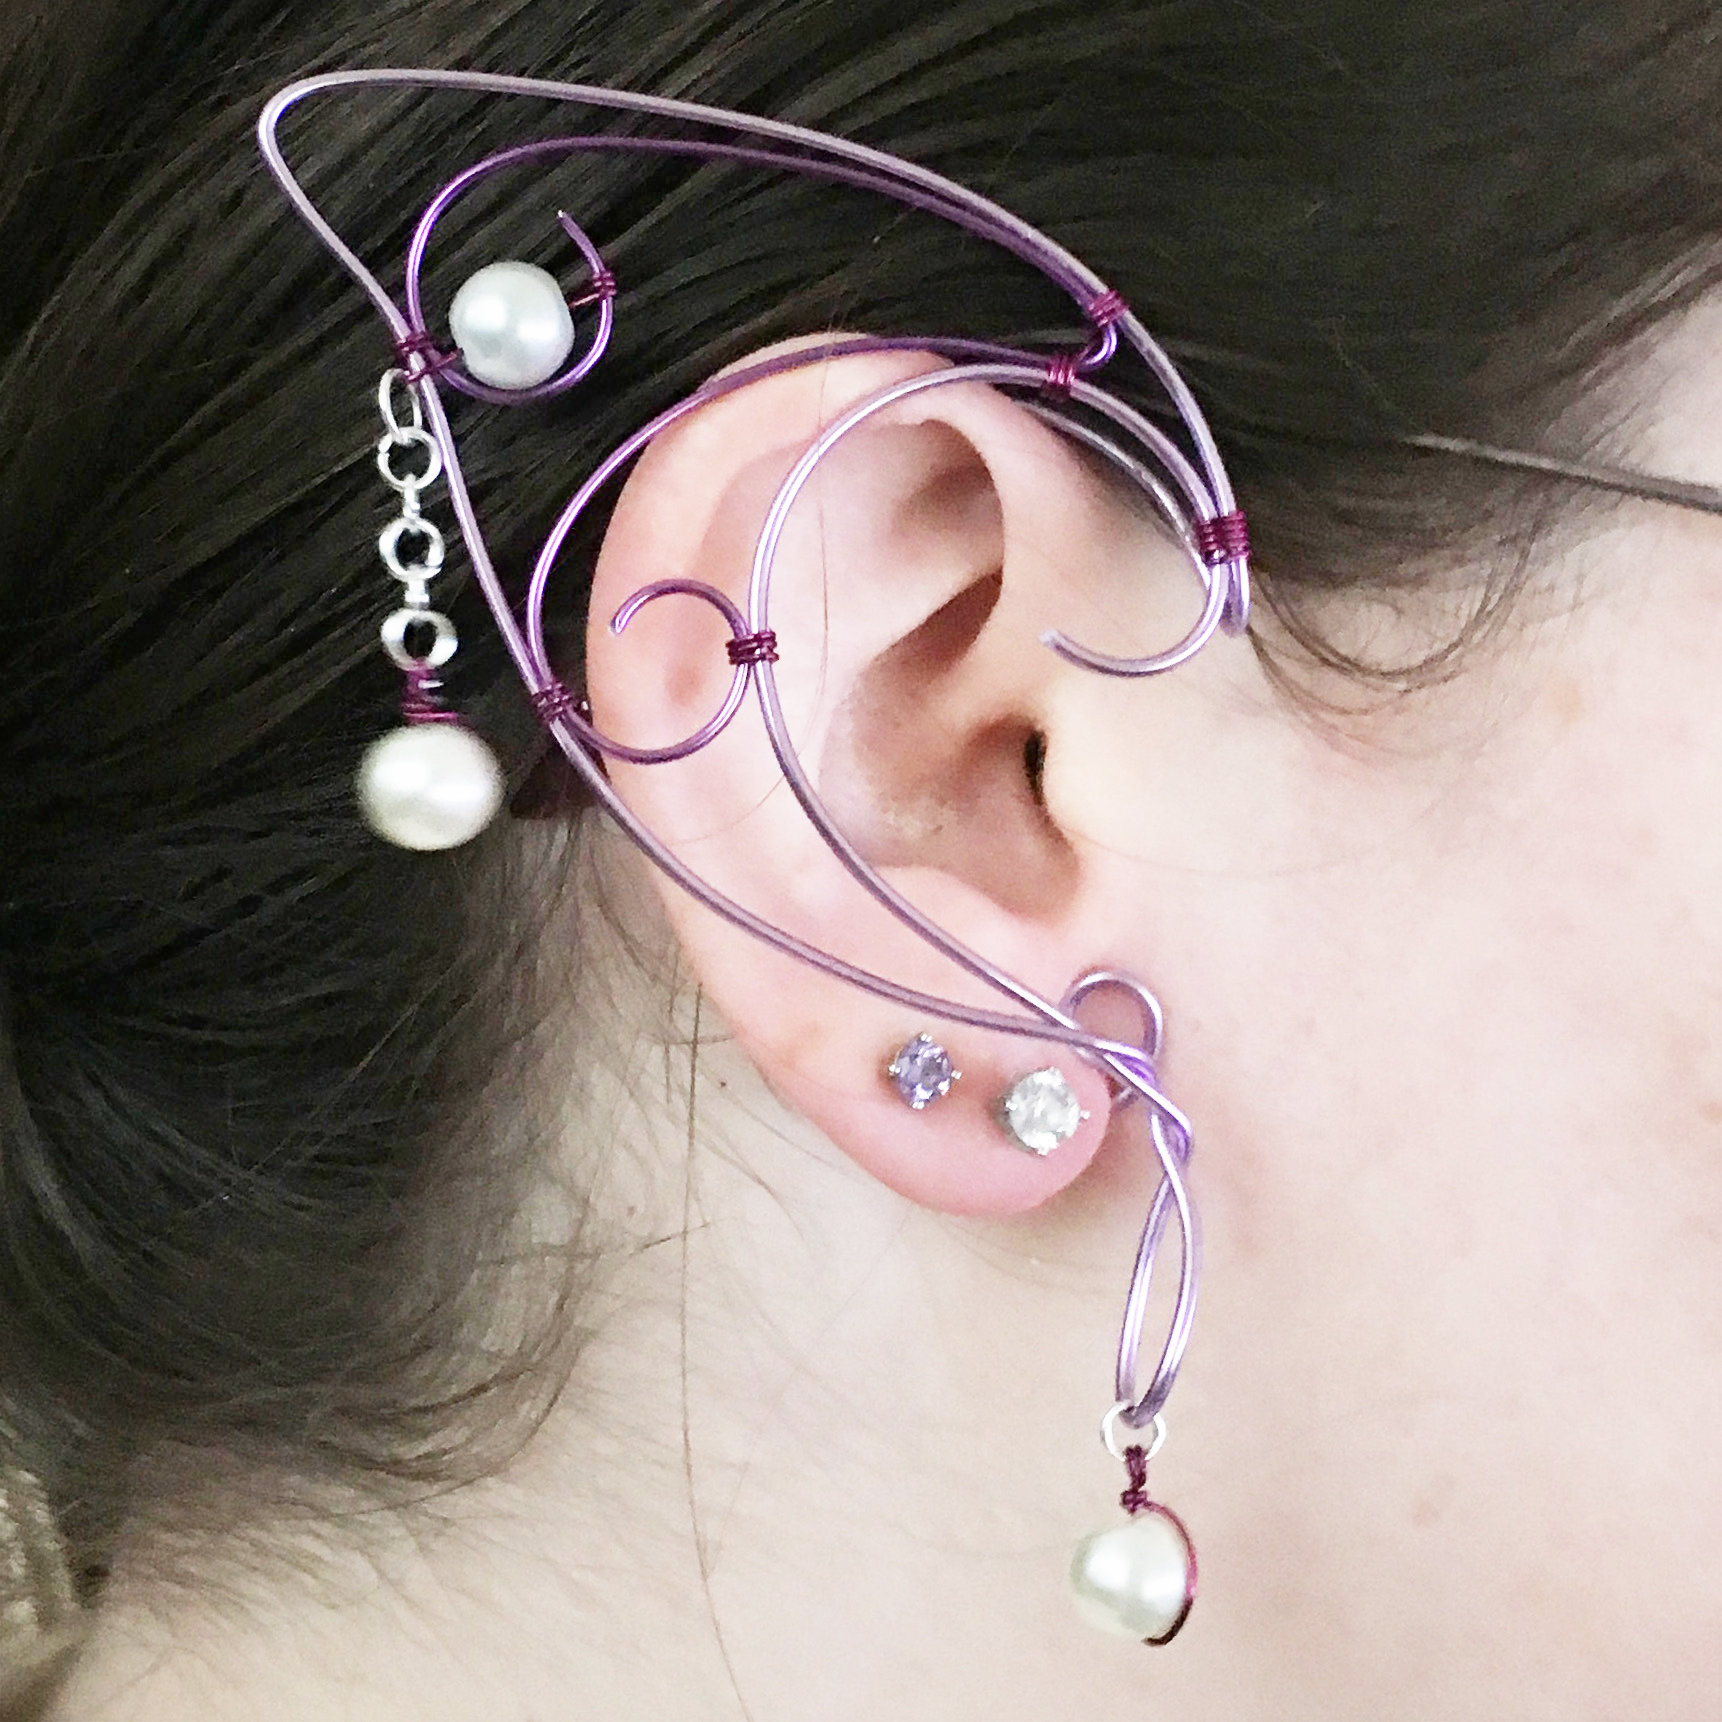 Elf Ear Cuff - Lavender, Purple, with beads EC001